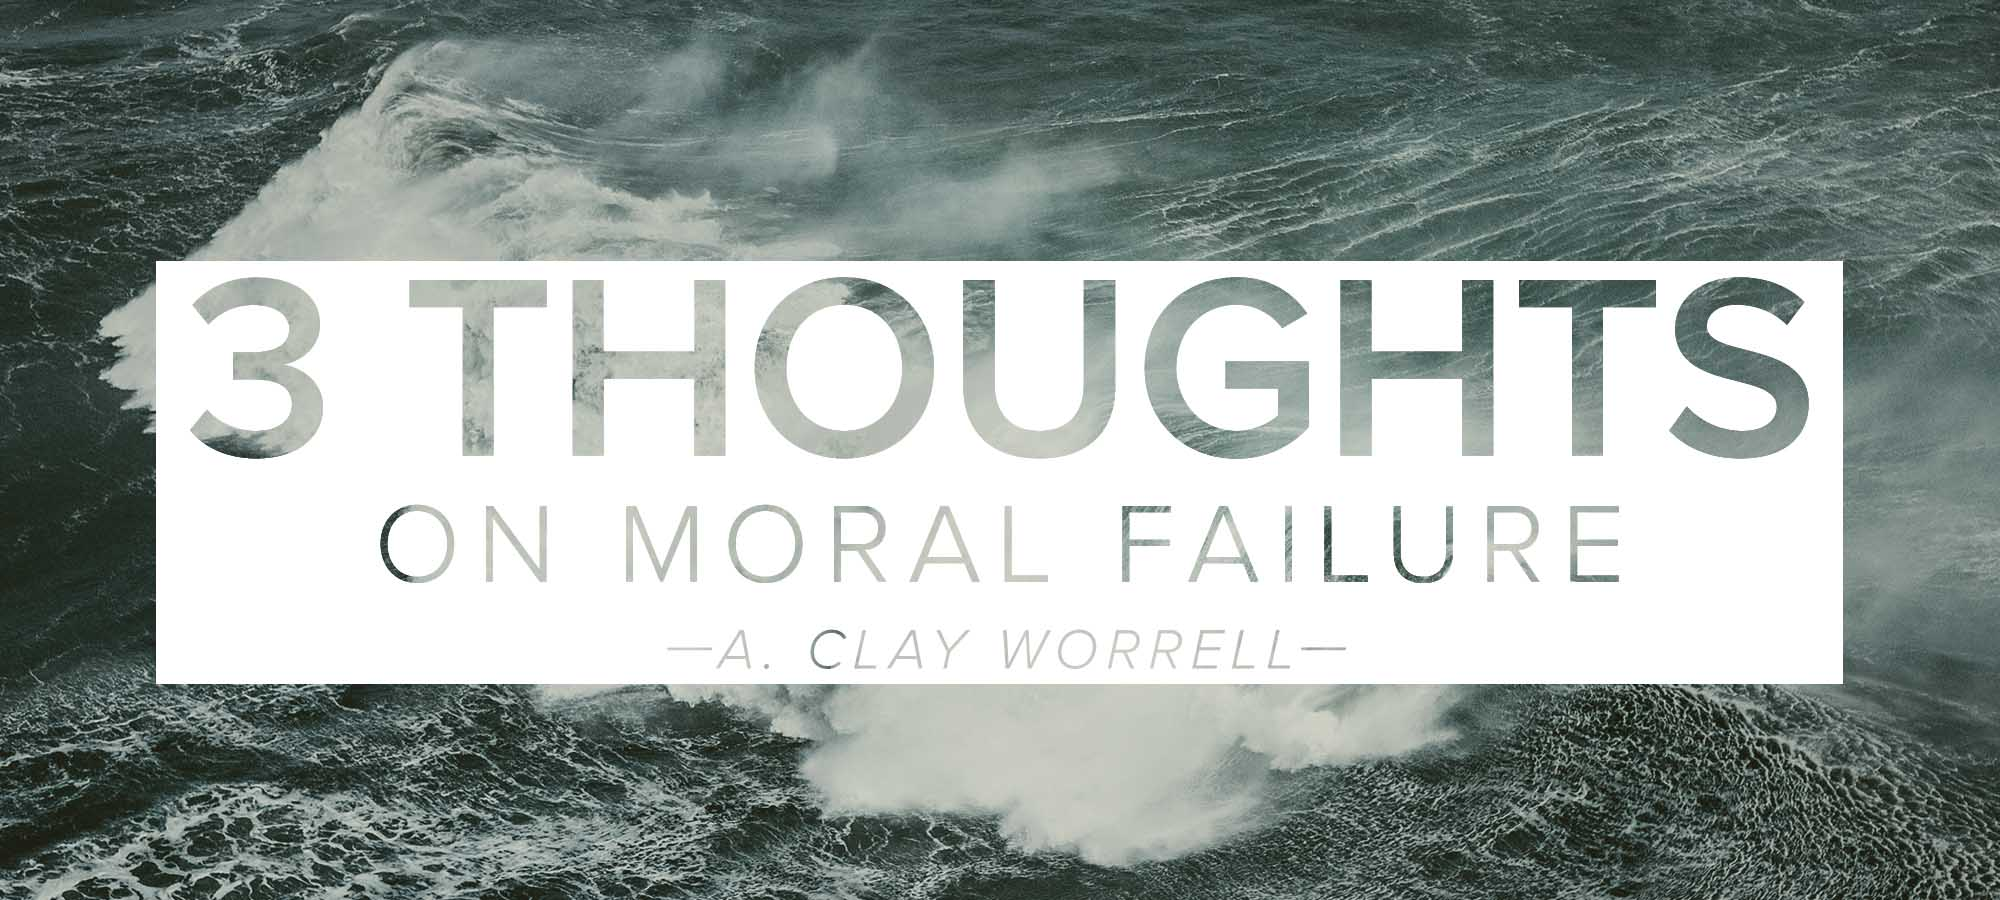 Three Thoughts on Moral Failure